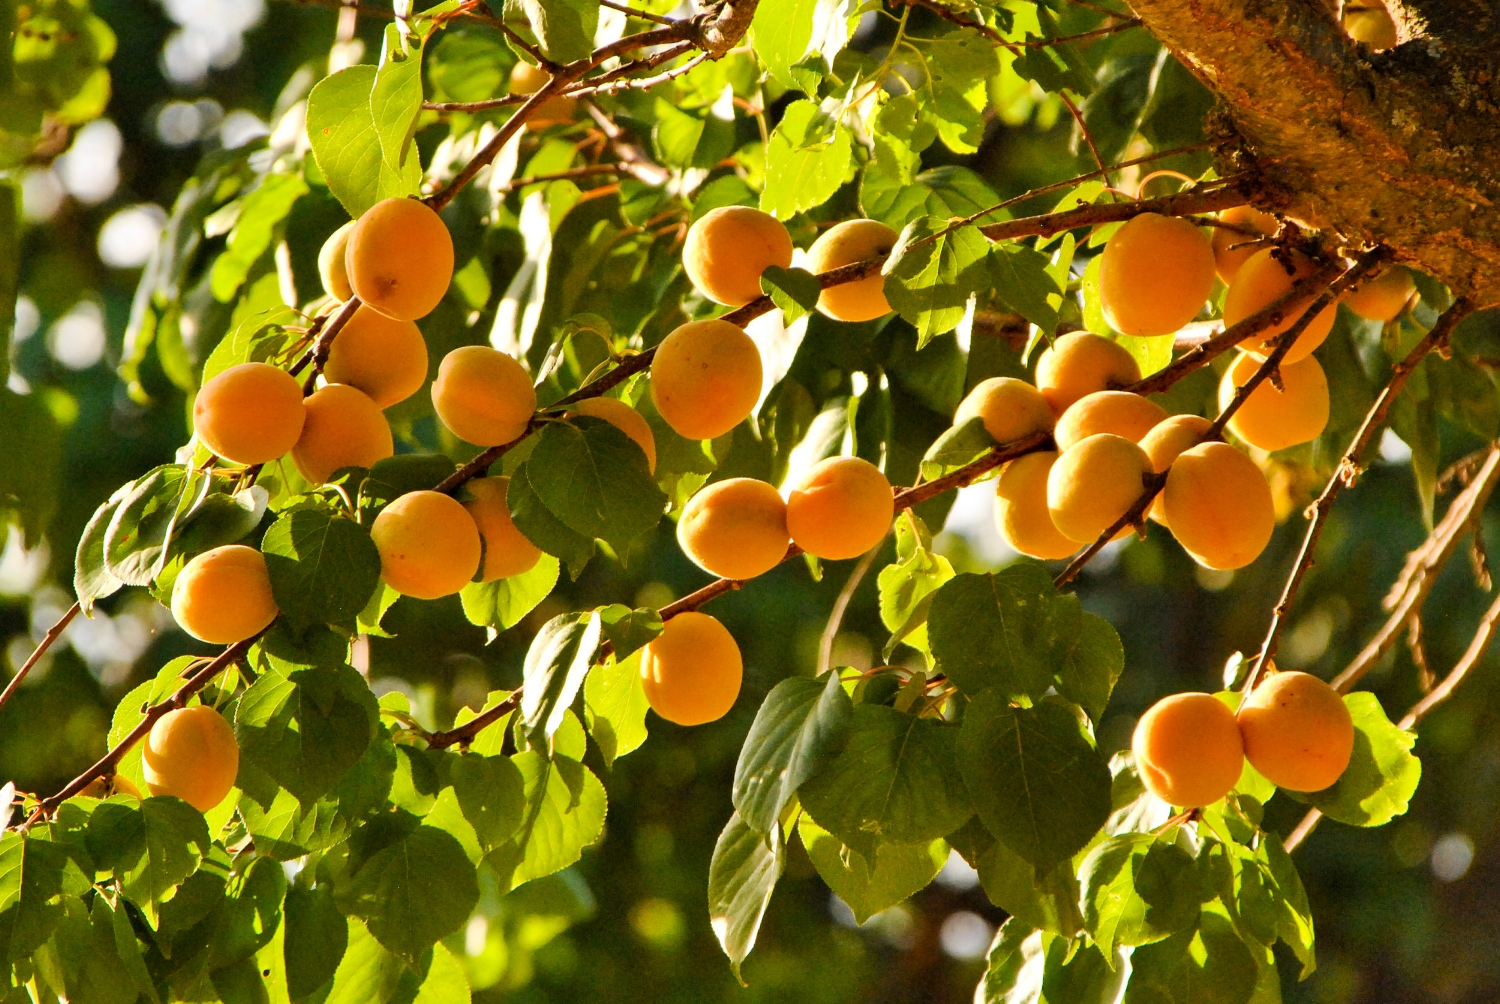 Apricots enjoying the warmth of the afternoon sun.